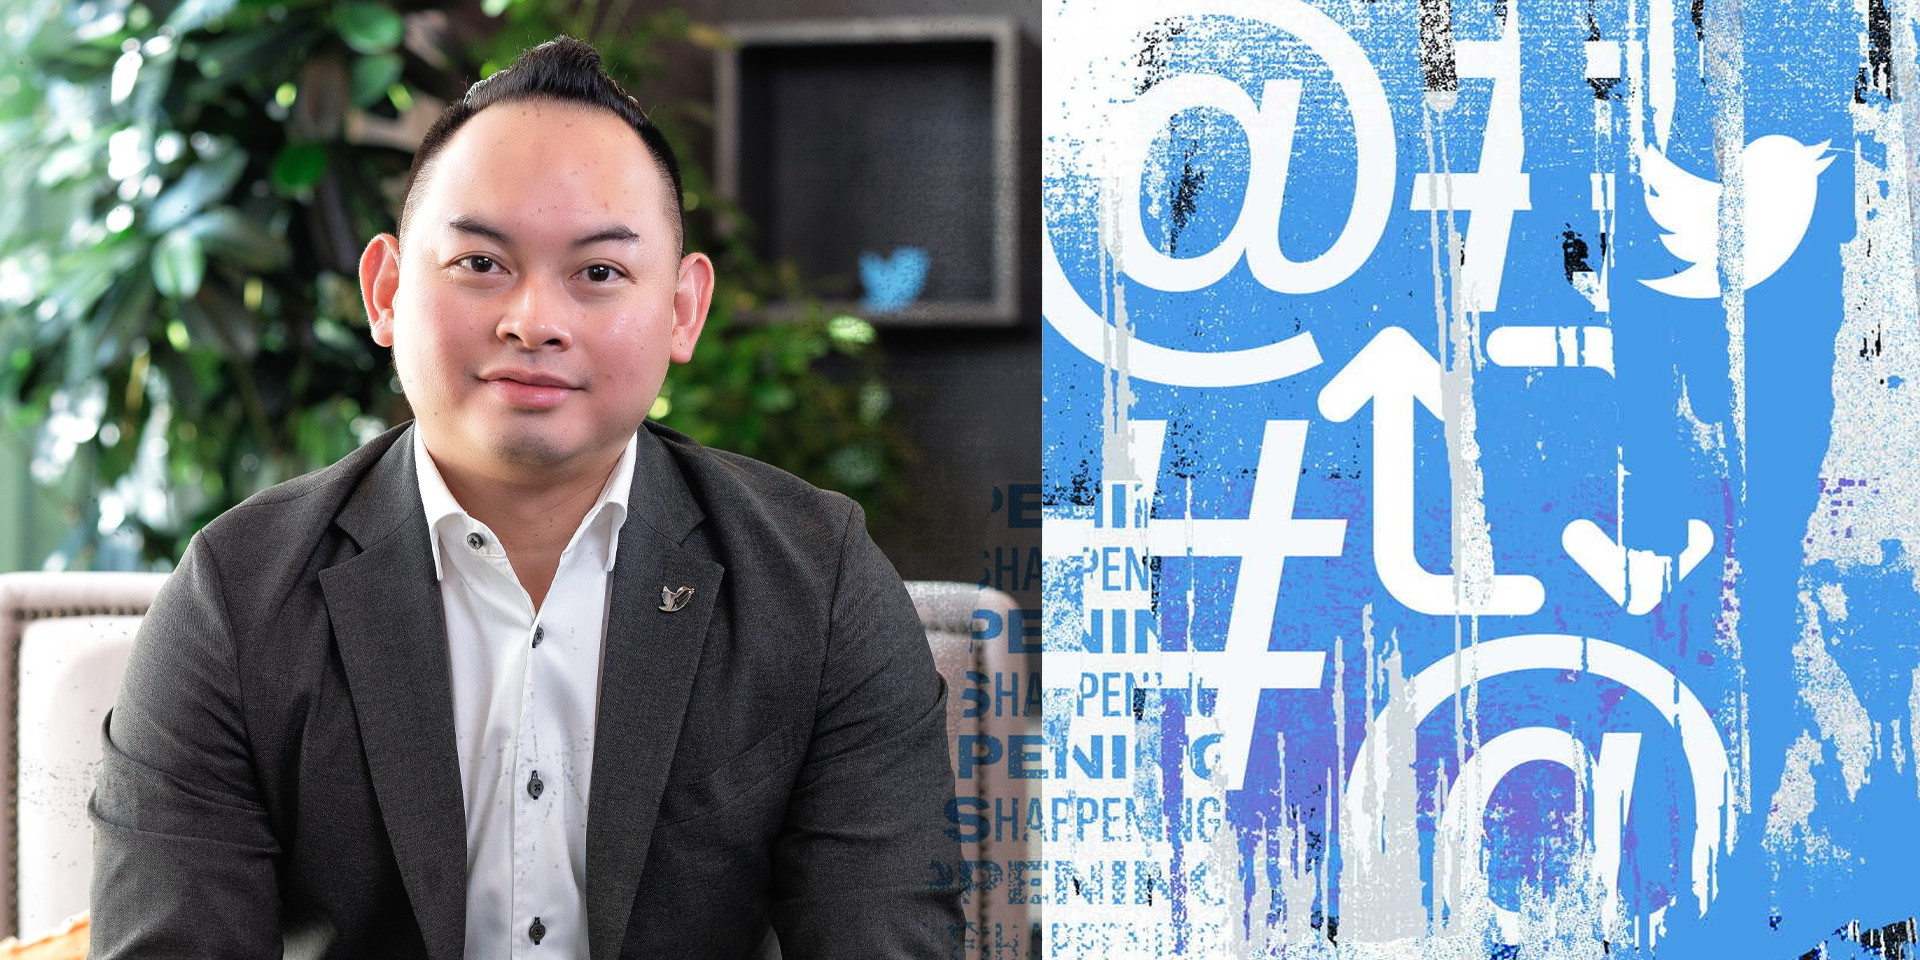 Twitter's Carl Cheng on how its new initiatives and programs help artists and musicians during the ongoing pandemic – Twitter Spaces, Tip Jar, Fleets, and more